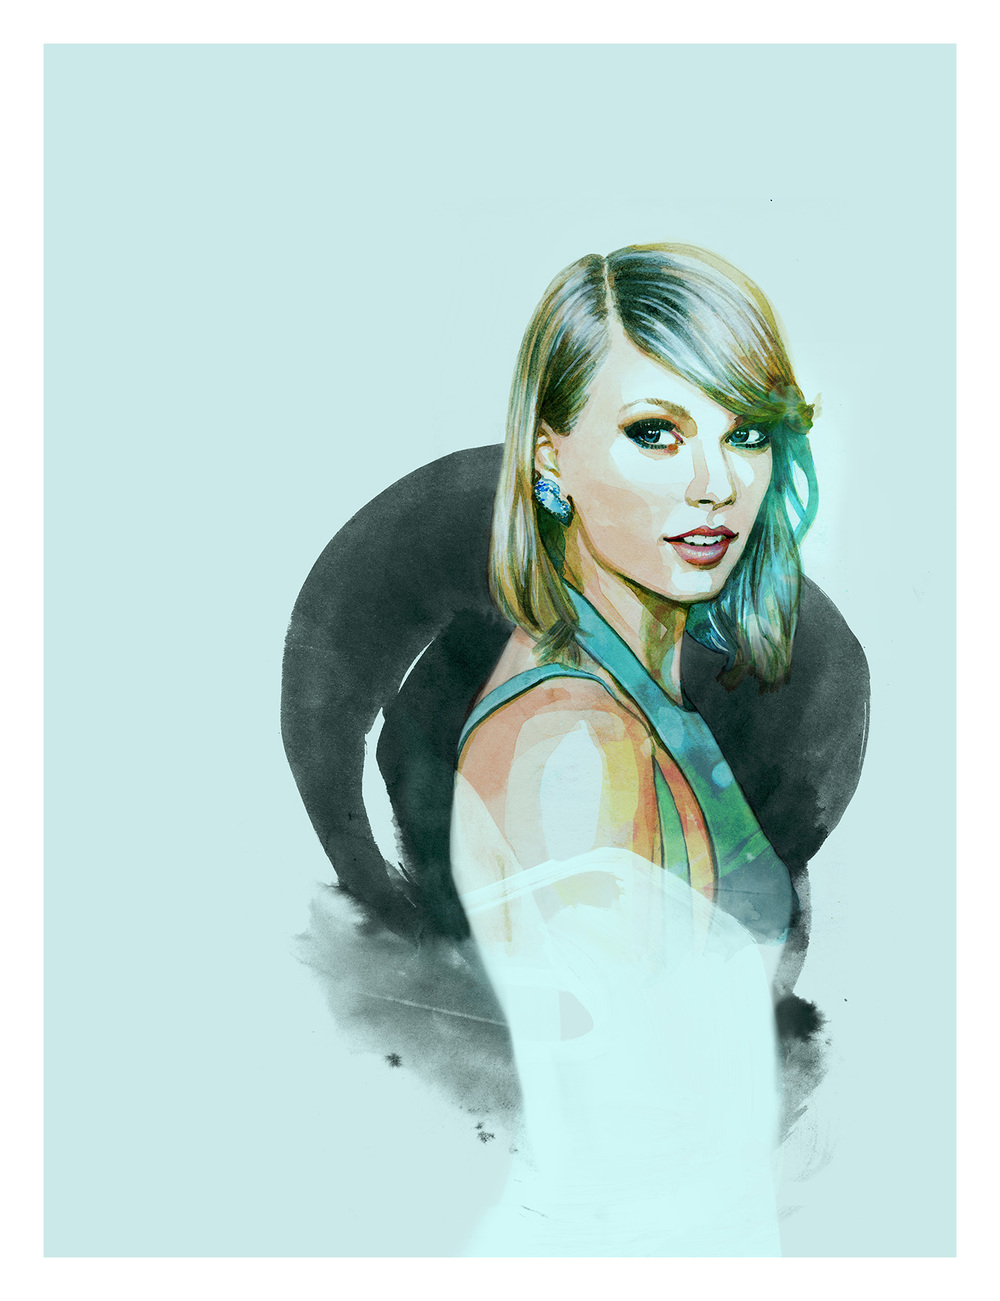 The Queen of Pop / Taylor Swift